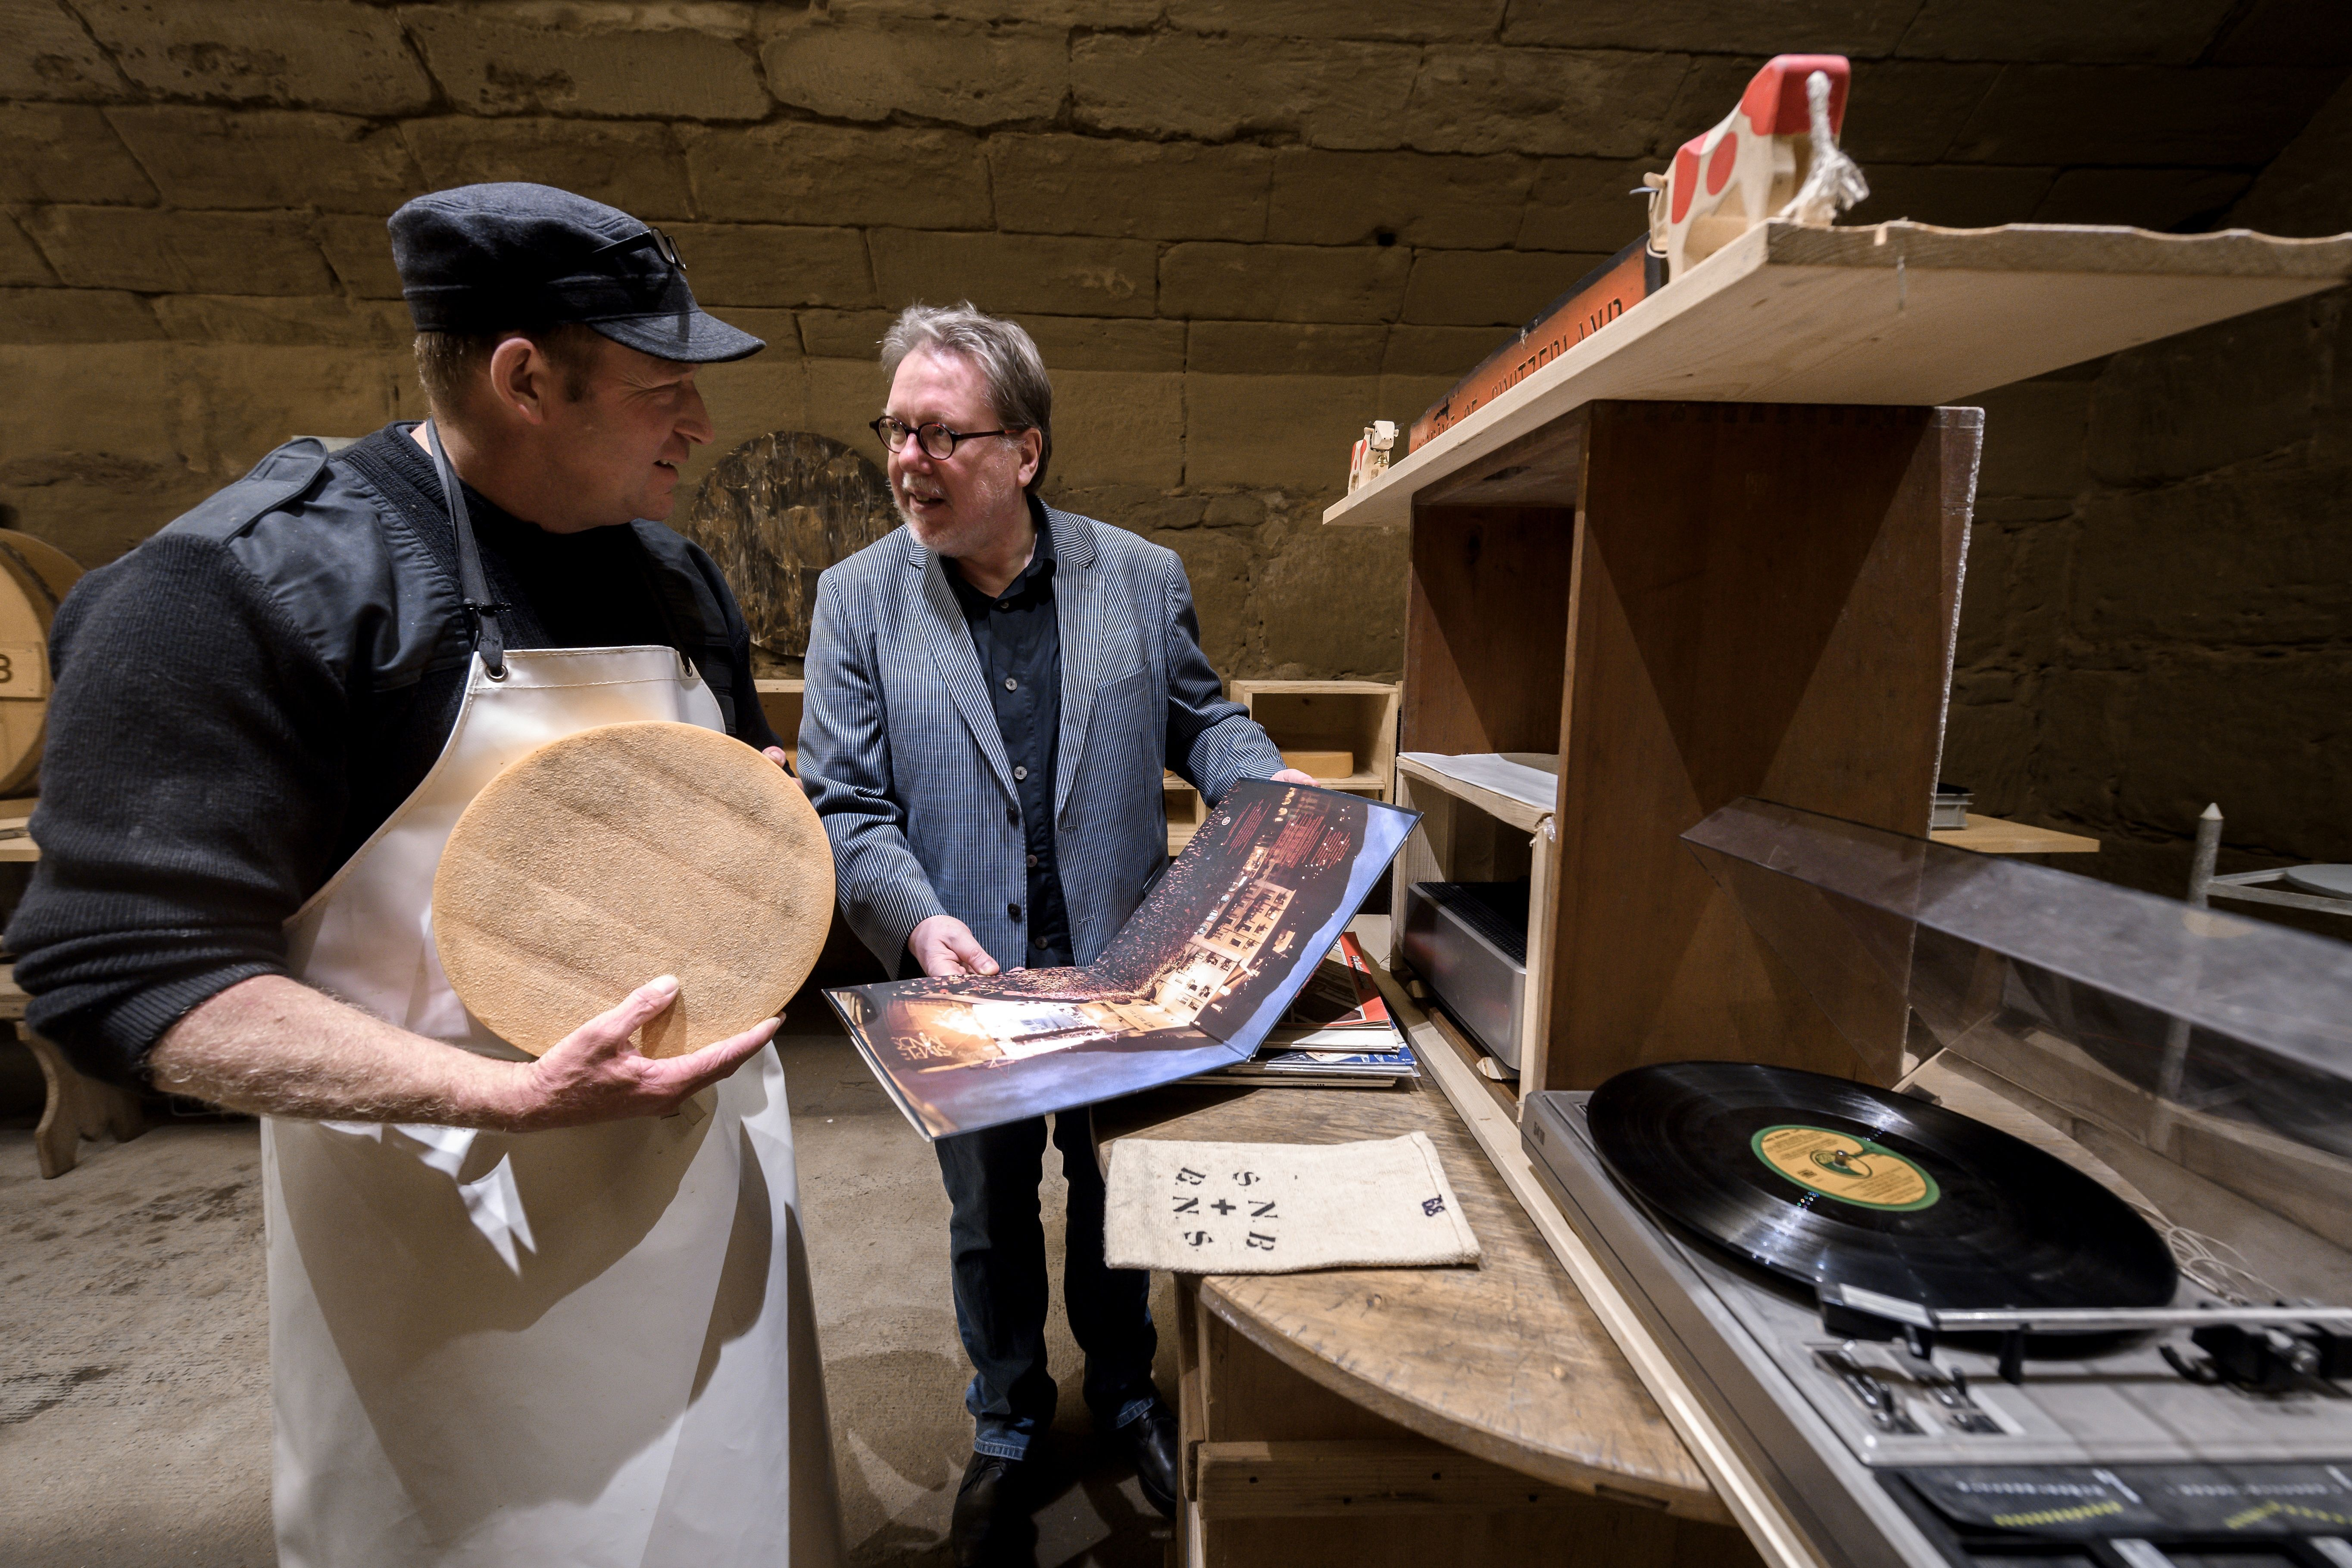 New Swiss Study Suggests Hip Hop Makes Cheese Taste Better